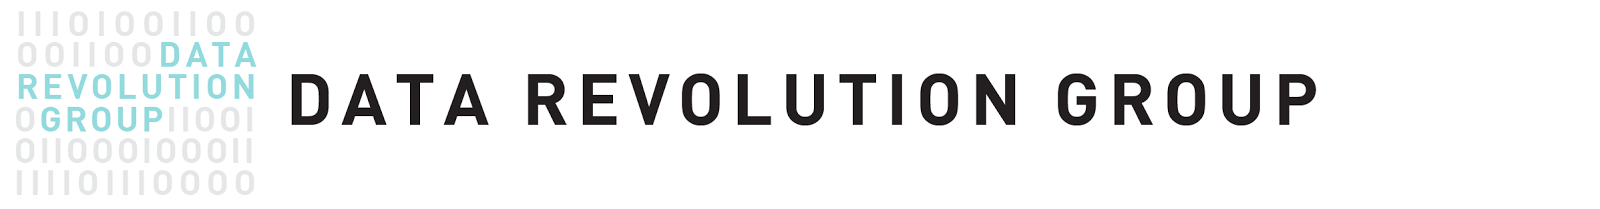 Data Revolution Group